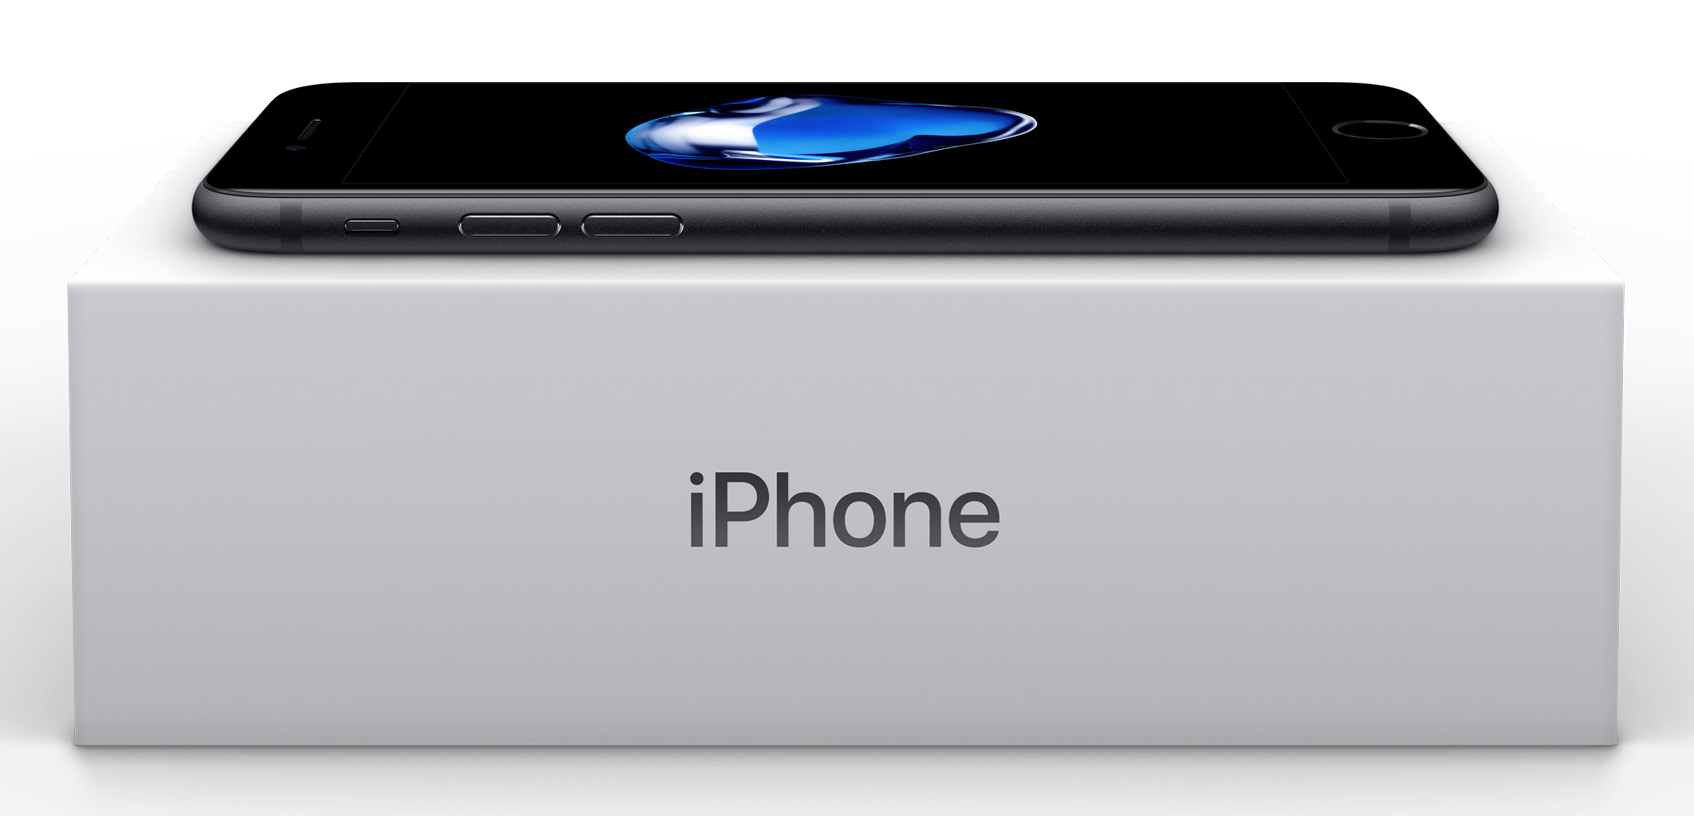 iphone-7-display-image